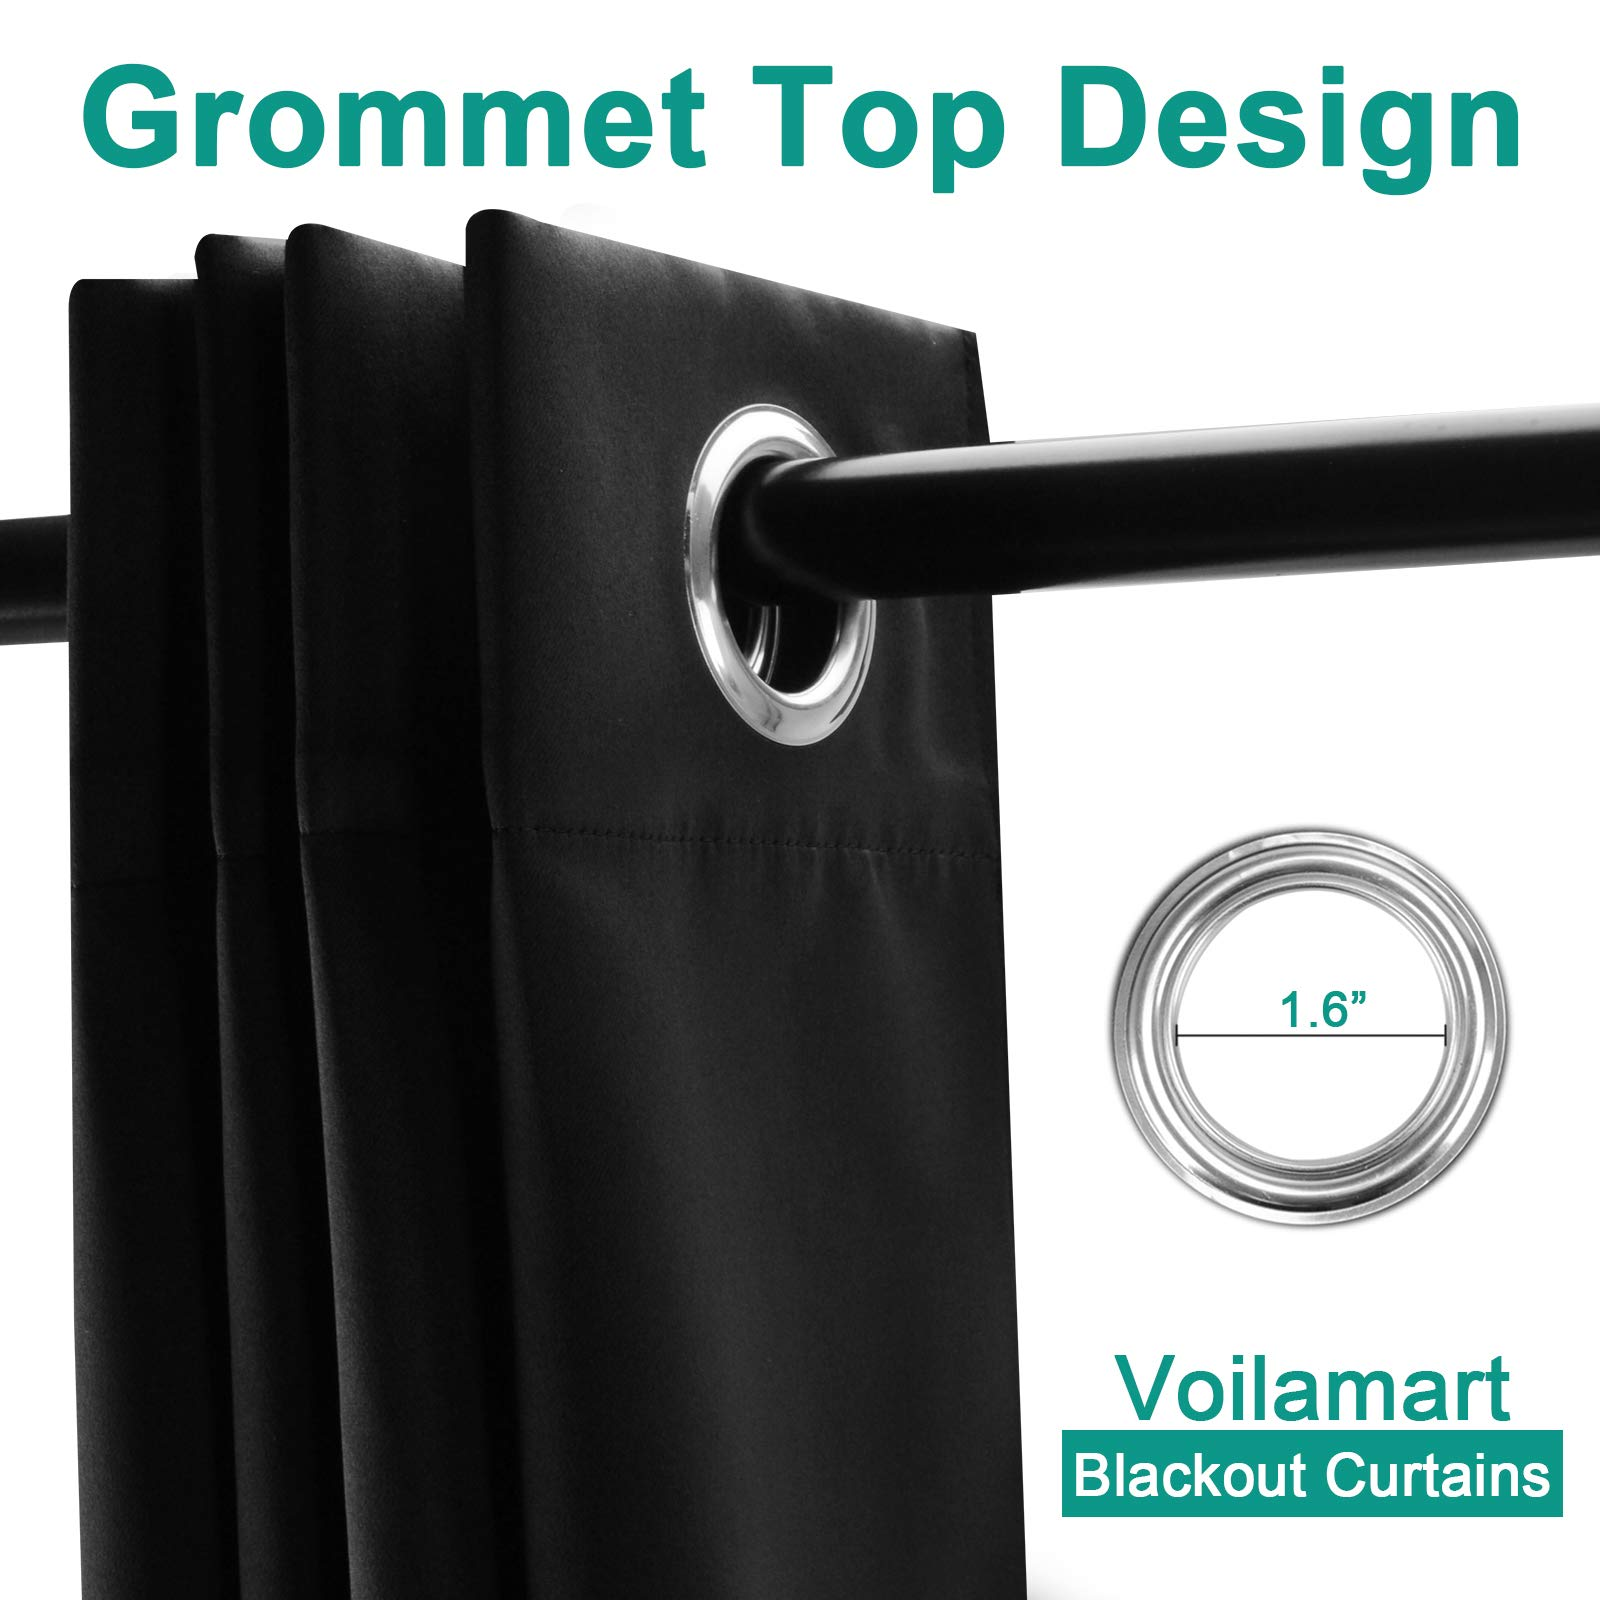 Voilarmart Blackout Curtains 52 x 63 Thermal Insulated Light Reducing Grommet Top Window Curtain Set for Bedroom, Living Room, 2 Panels - Black